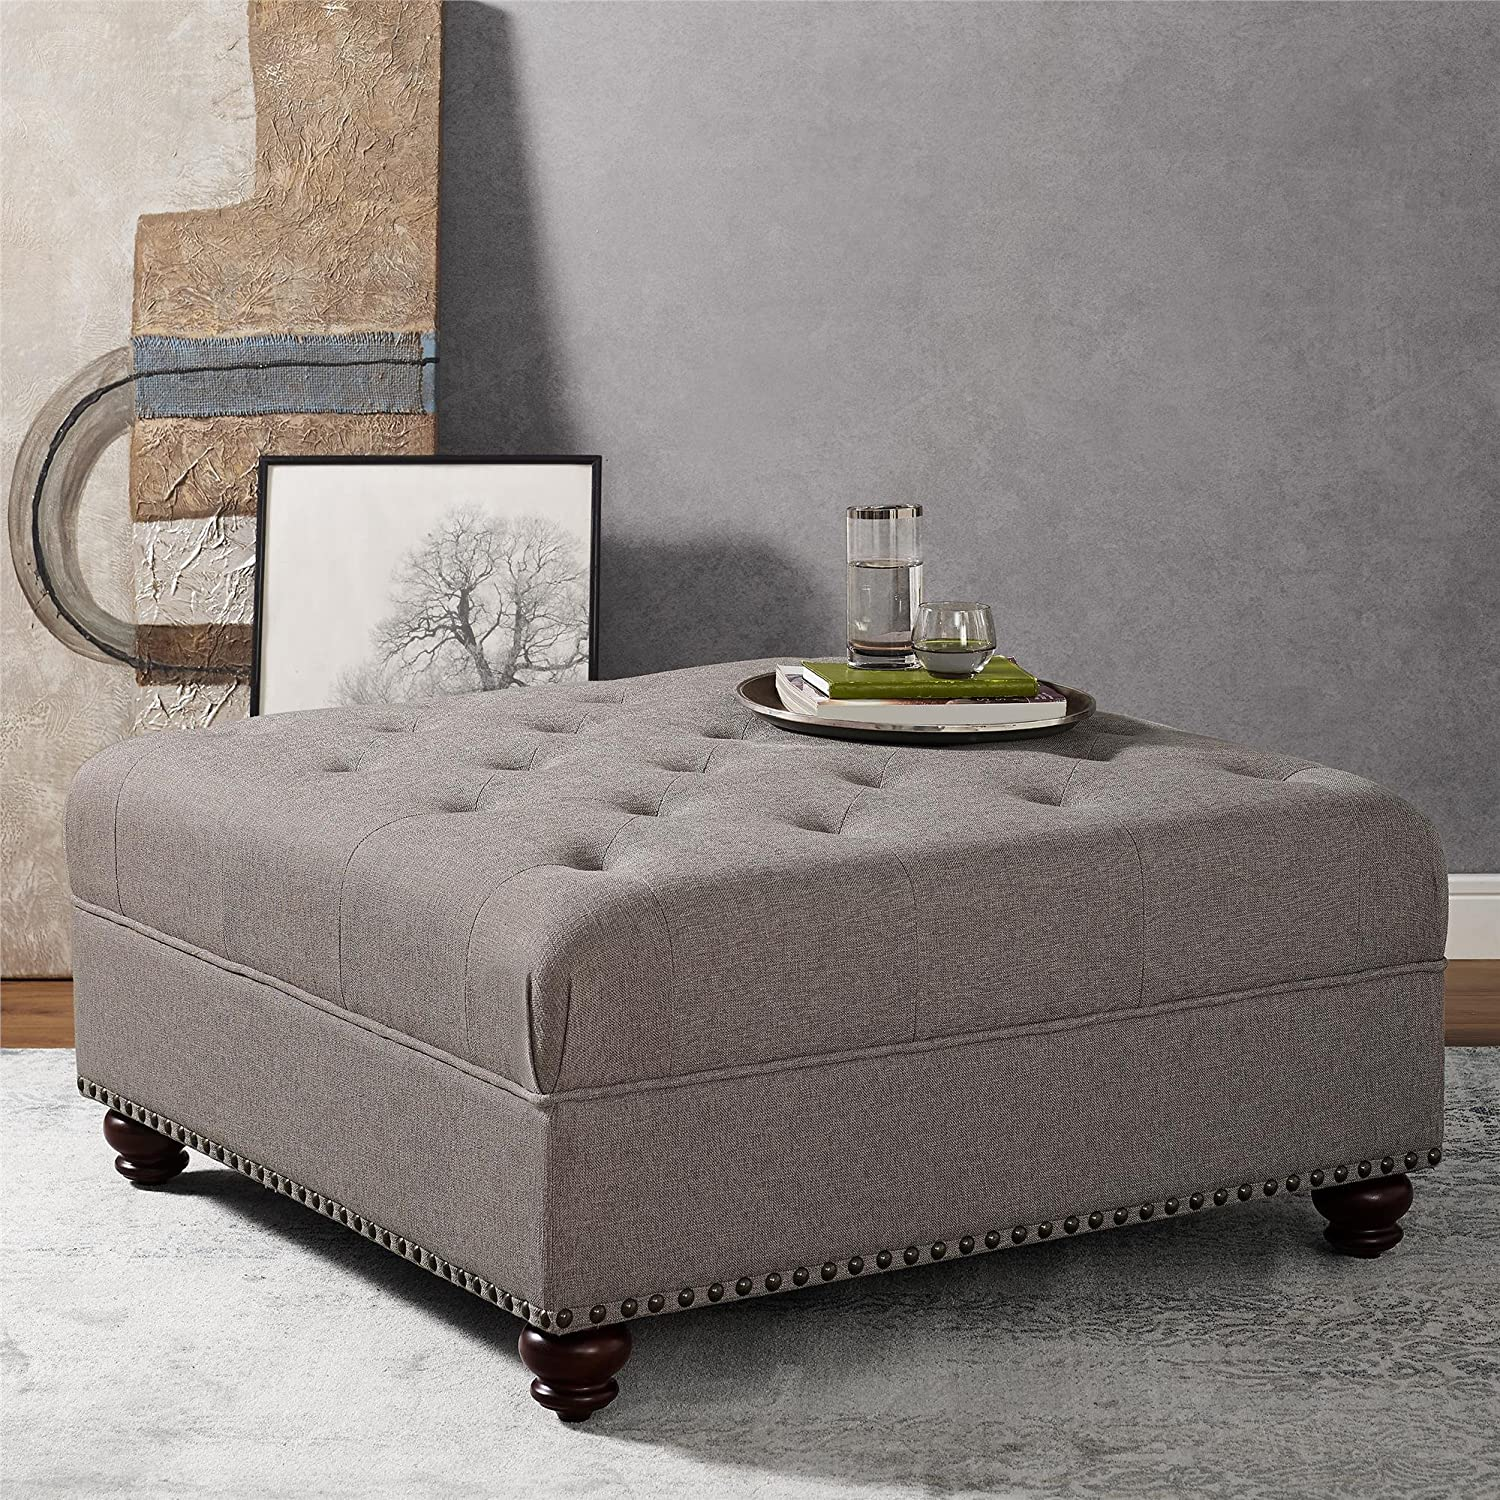 Astonishing Dorel Living Hastings Tufted Ottoman With Nailheads Beige Pabps2019 Chair Design Images Pabps2019Com